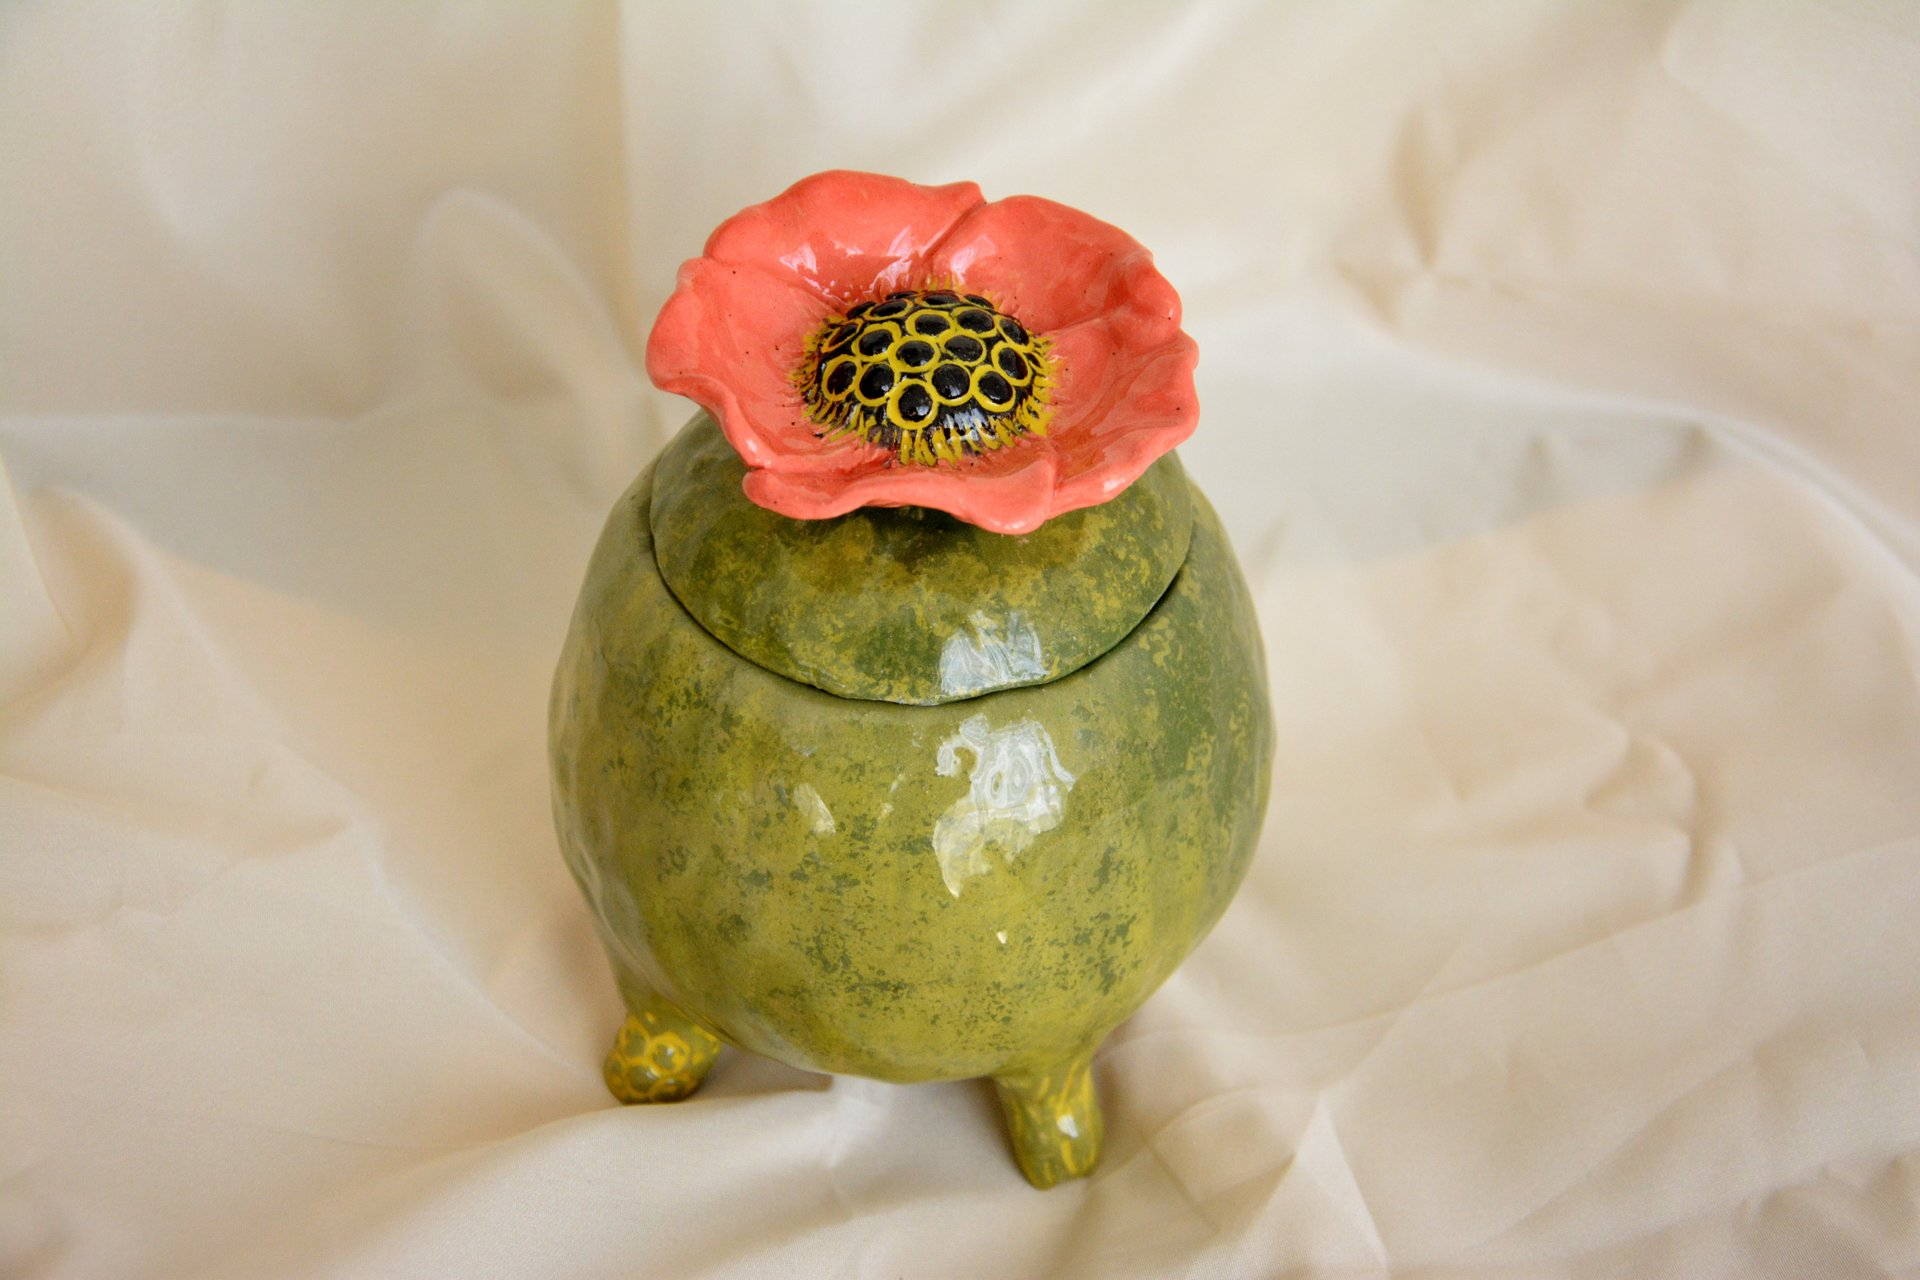 Green jar with Poppy - Ceramic jars, 12 cm * 12 cm, height - 15 cm, photo 1 of 3.